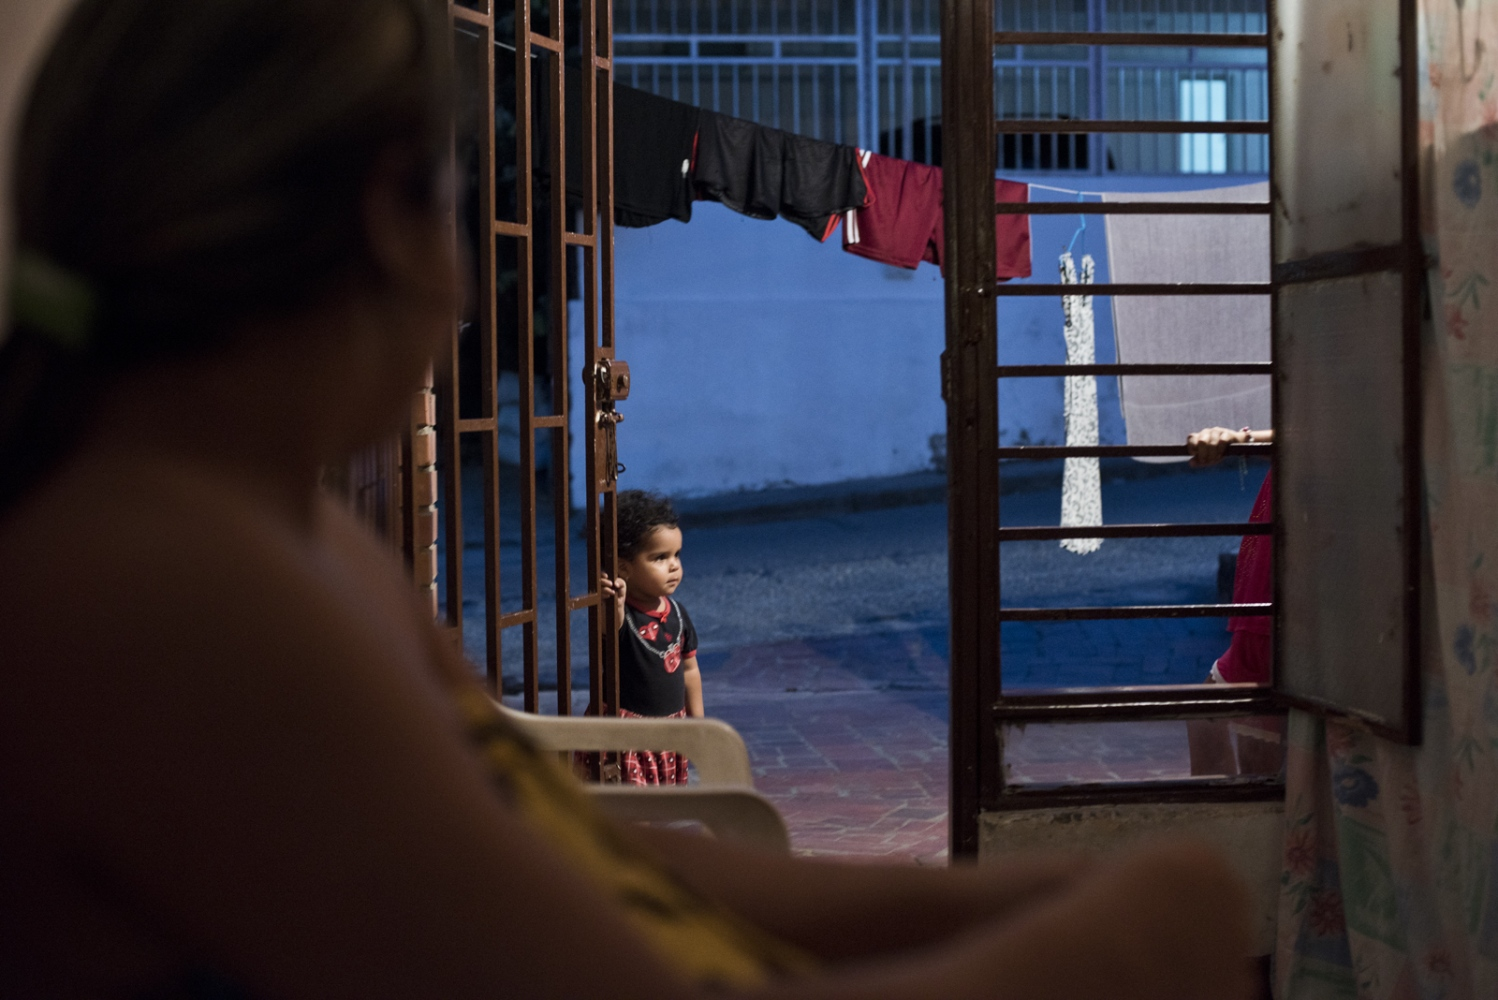 Gerlimar Pastran looks at her daughter outside of the small room where the family lives in La Libertad neighborhood on March  2017 in Cucuta, Colombia.